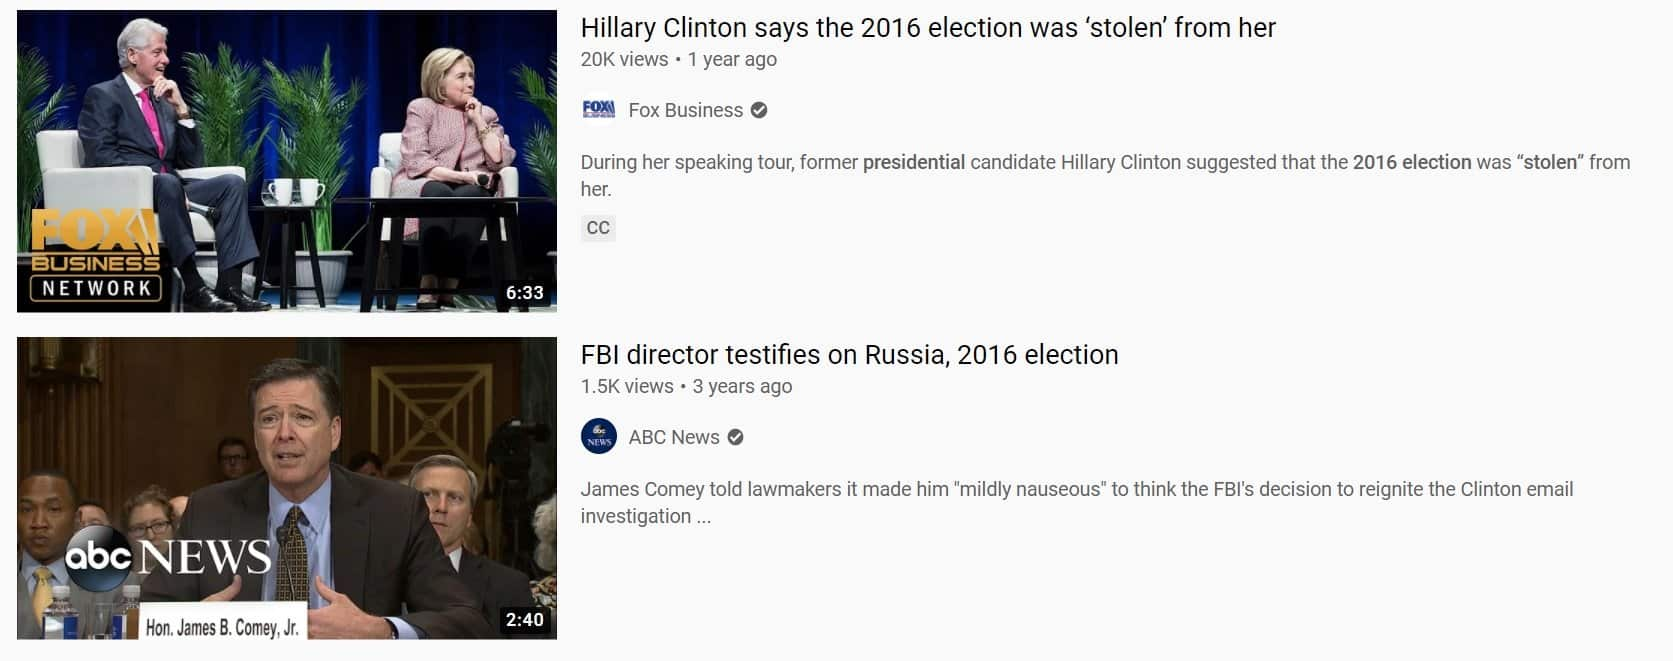 4 Conspiracies YouTube Allows To Flourish While Censoring Claims Of Election Fraud 1